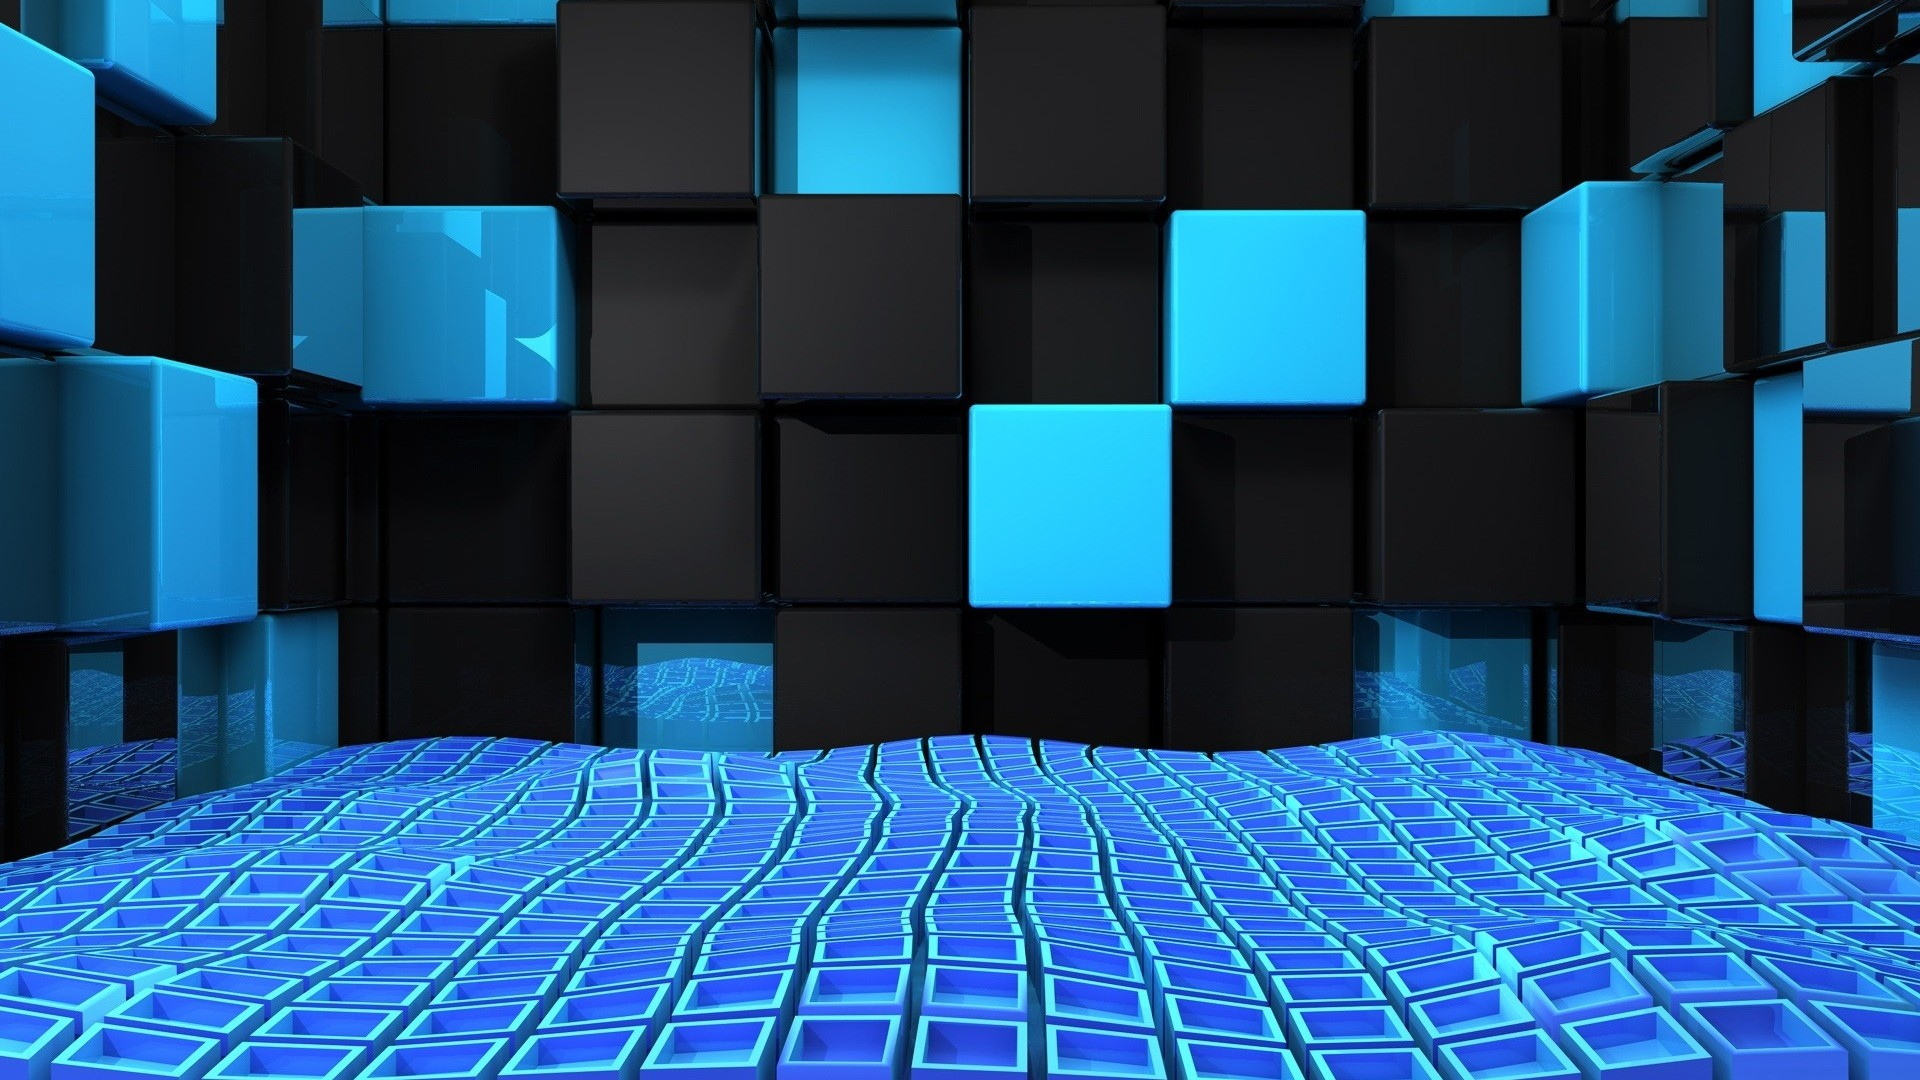 1920x1080 Preview wallpaper cube, squares, space, blue, black, weightlessness